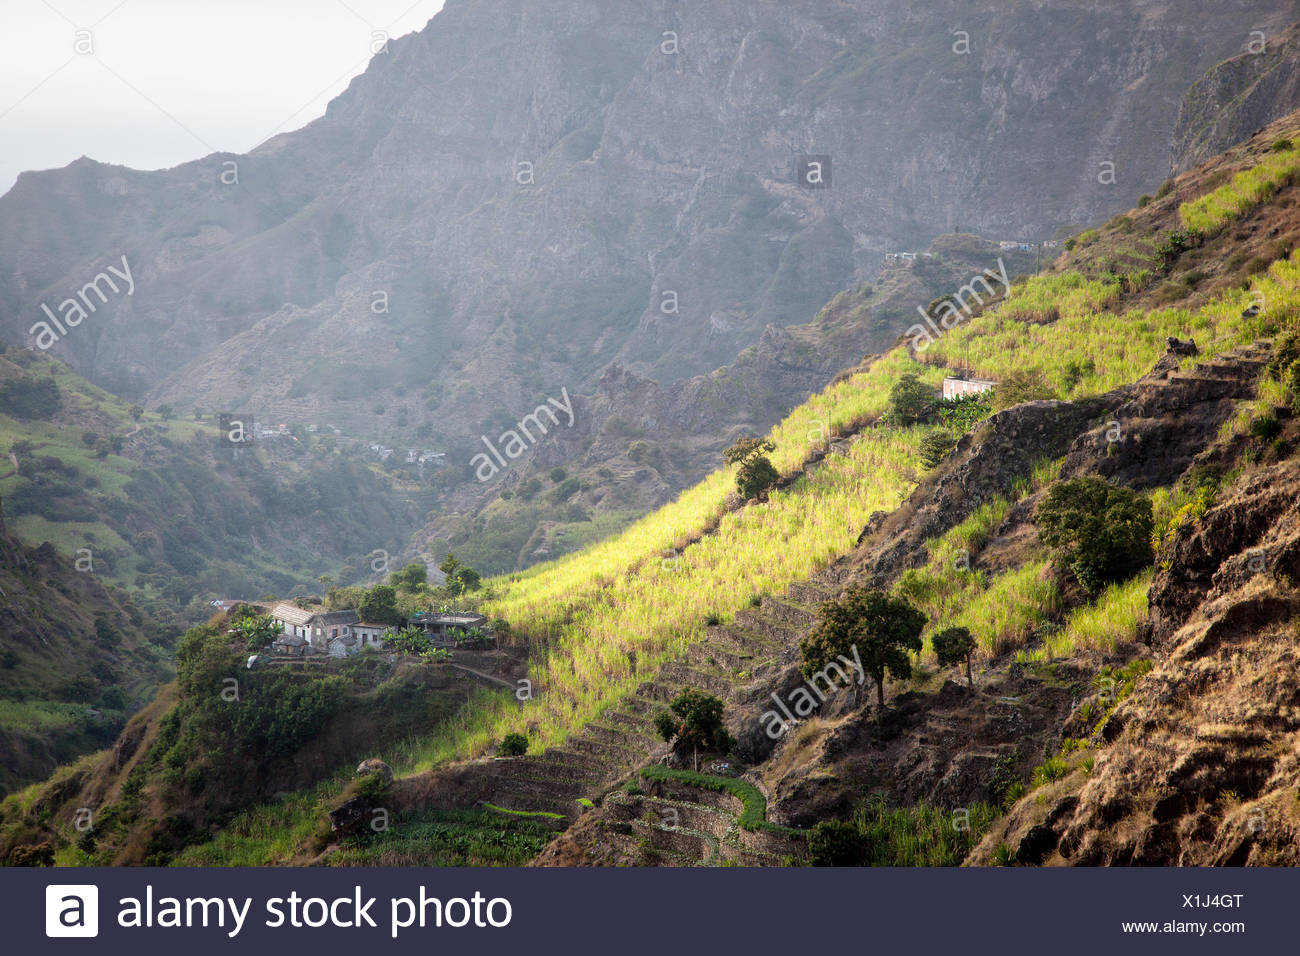 Lush green rice fields on the mountainsides of San Antao Island. - Stock Image